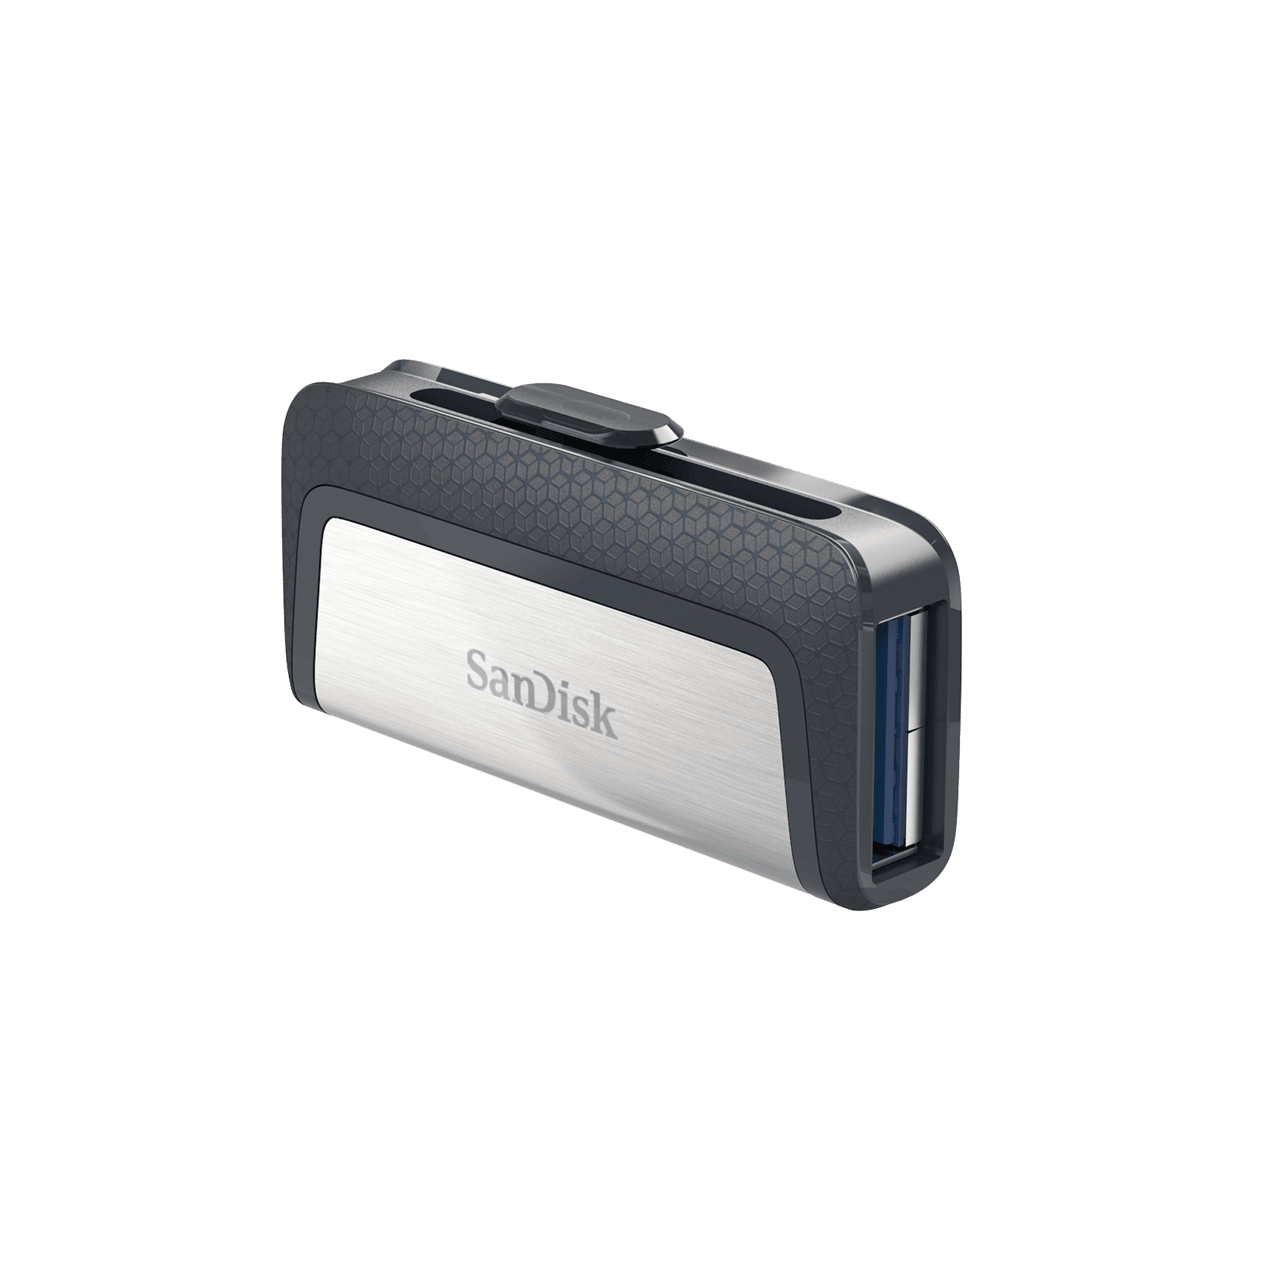 SanDisk Ultra Dual Drive OTG USB 3.1 Type-C with High Speed Transfer, Up To 150MB/s, Compact Size, Slide Design, SanDisk Memory Zone APP Support, Strap Hole (16GB / 32GB / 64GB / 128GB / 256GB)